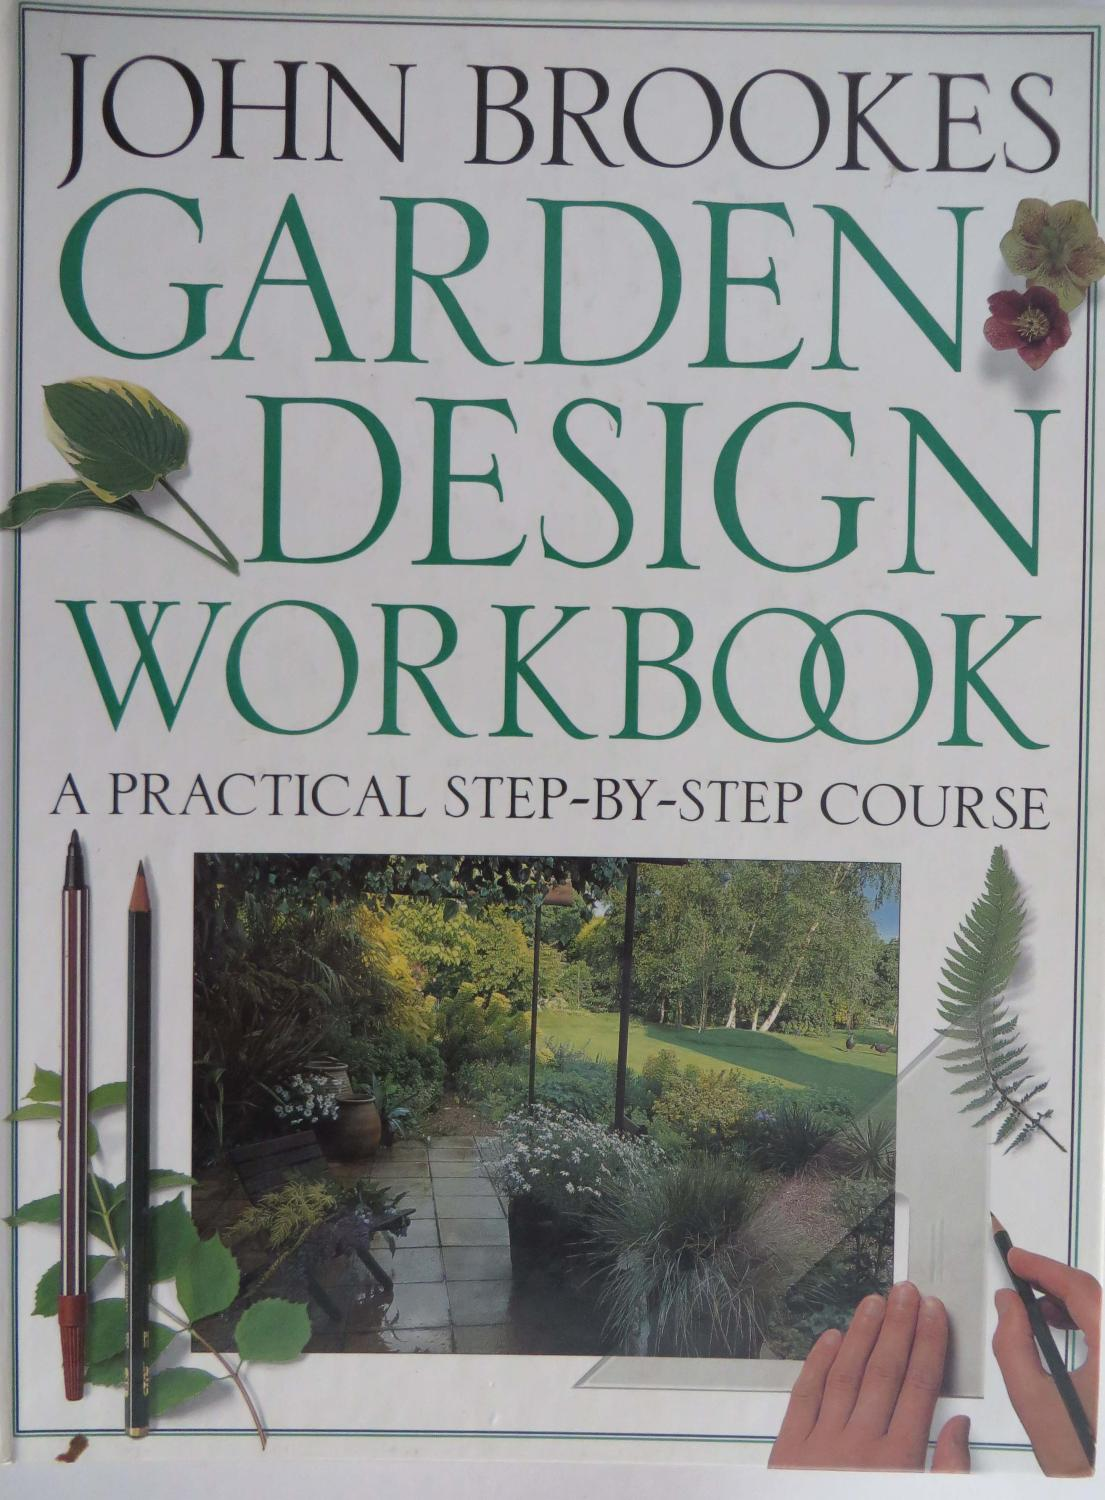 John Brookes Garden Design Workbook A Practical Step By Step